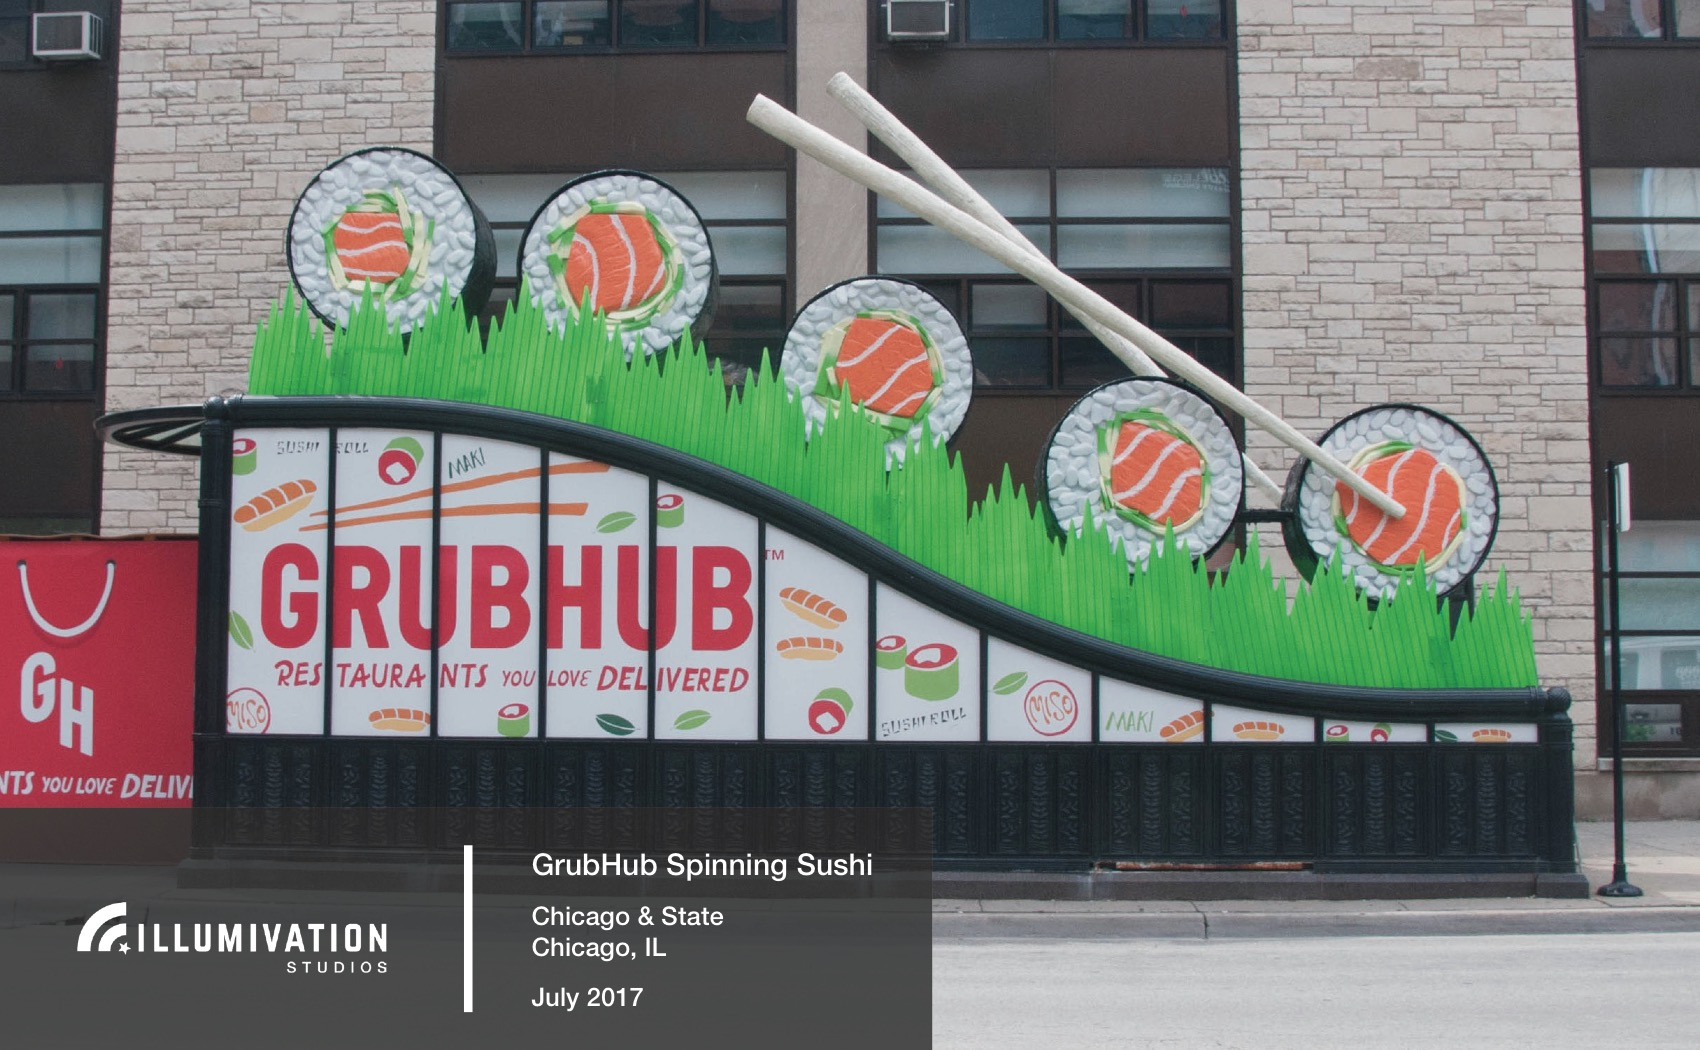 Illumivation Portfolio 2017 Grubhub Intersection Giant Sushi Chicago Creative Outdoor Advertising OOH Out of Home Marketing.jpeg